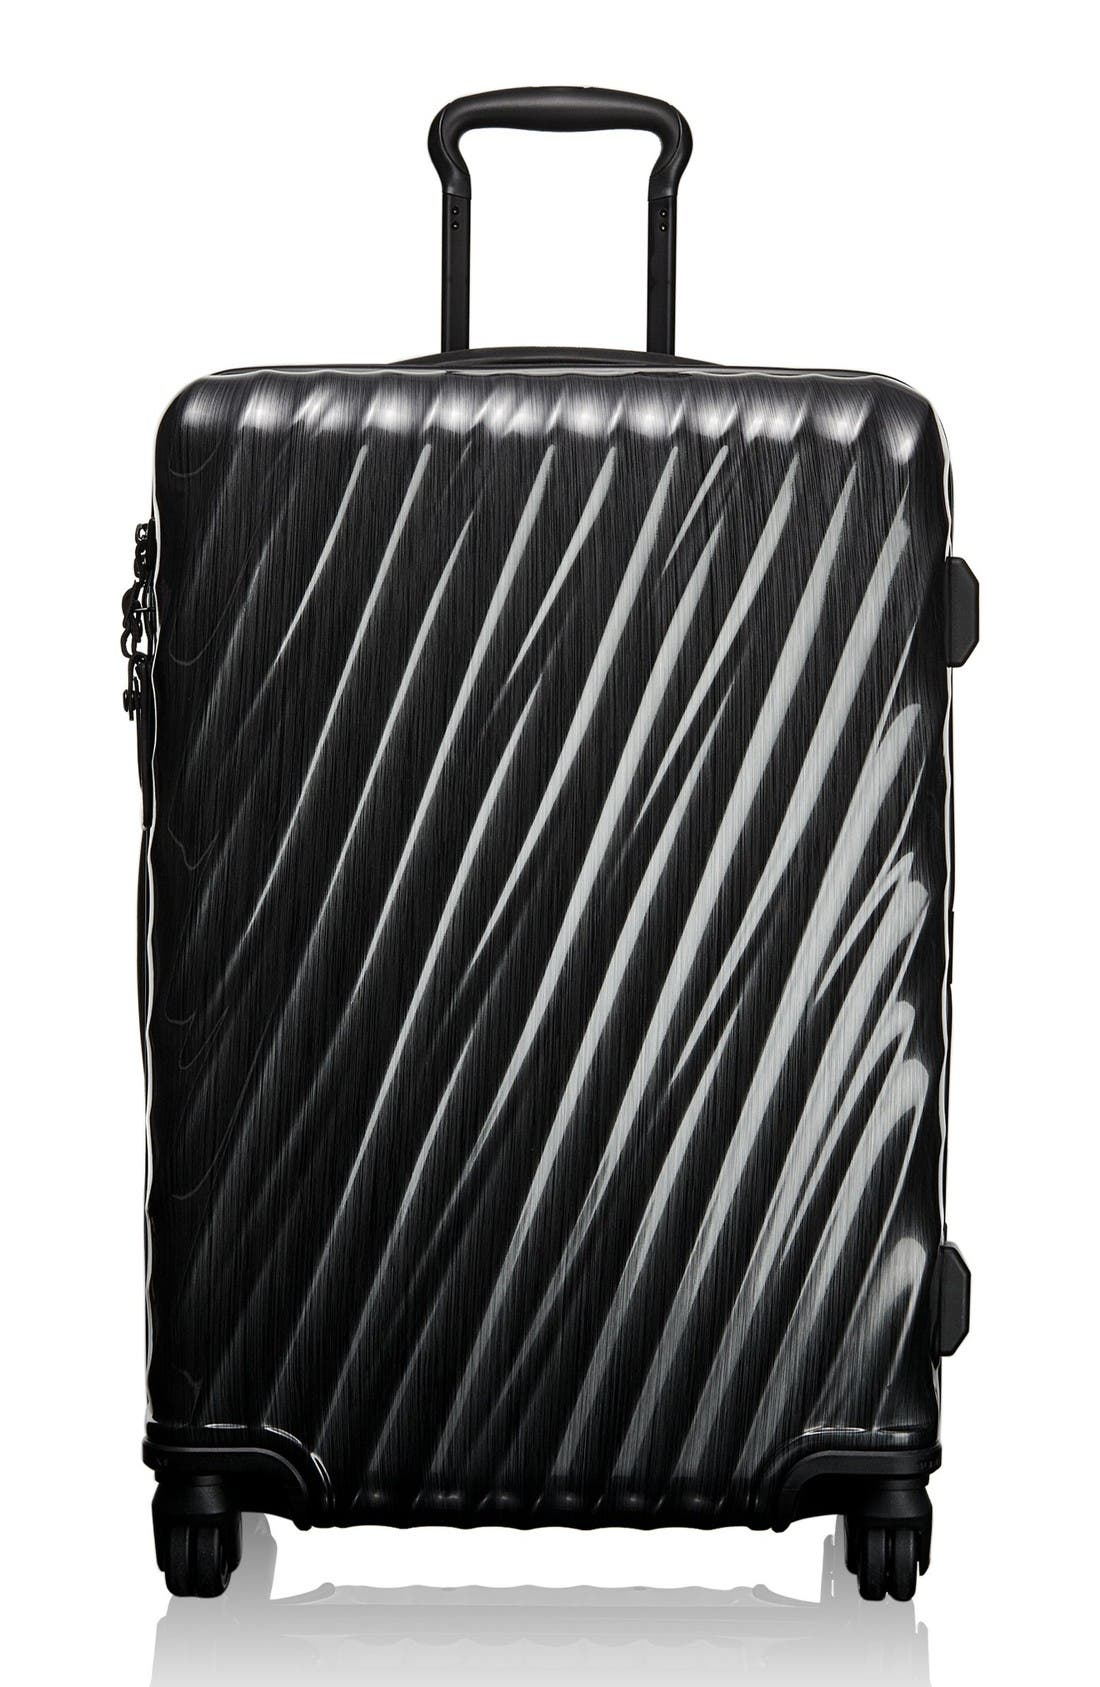 Tumi 19 Degree 26 Inch Short Trip Wheeled Packing Case